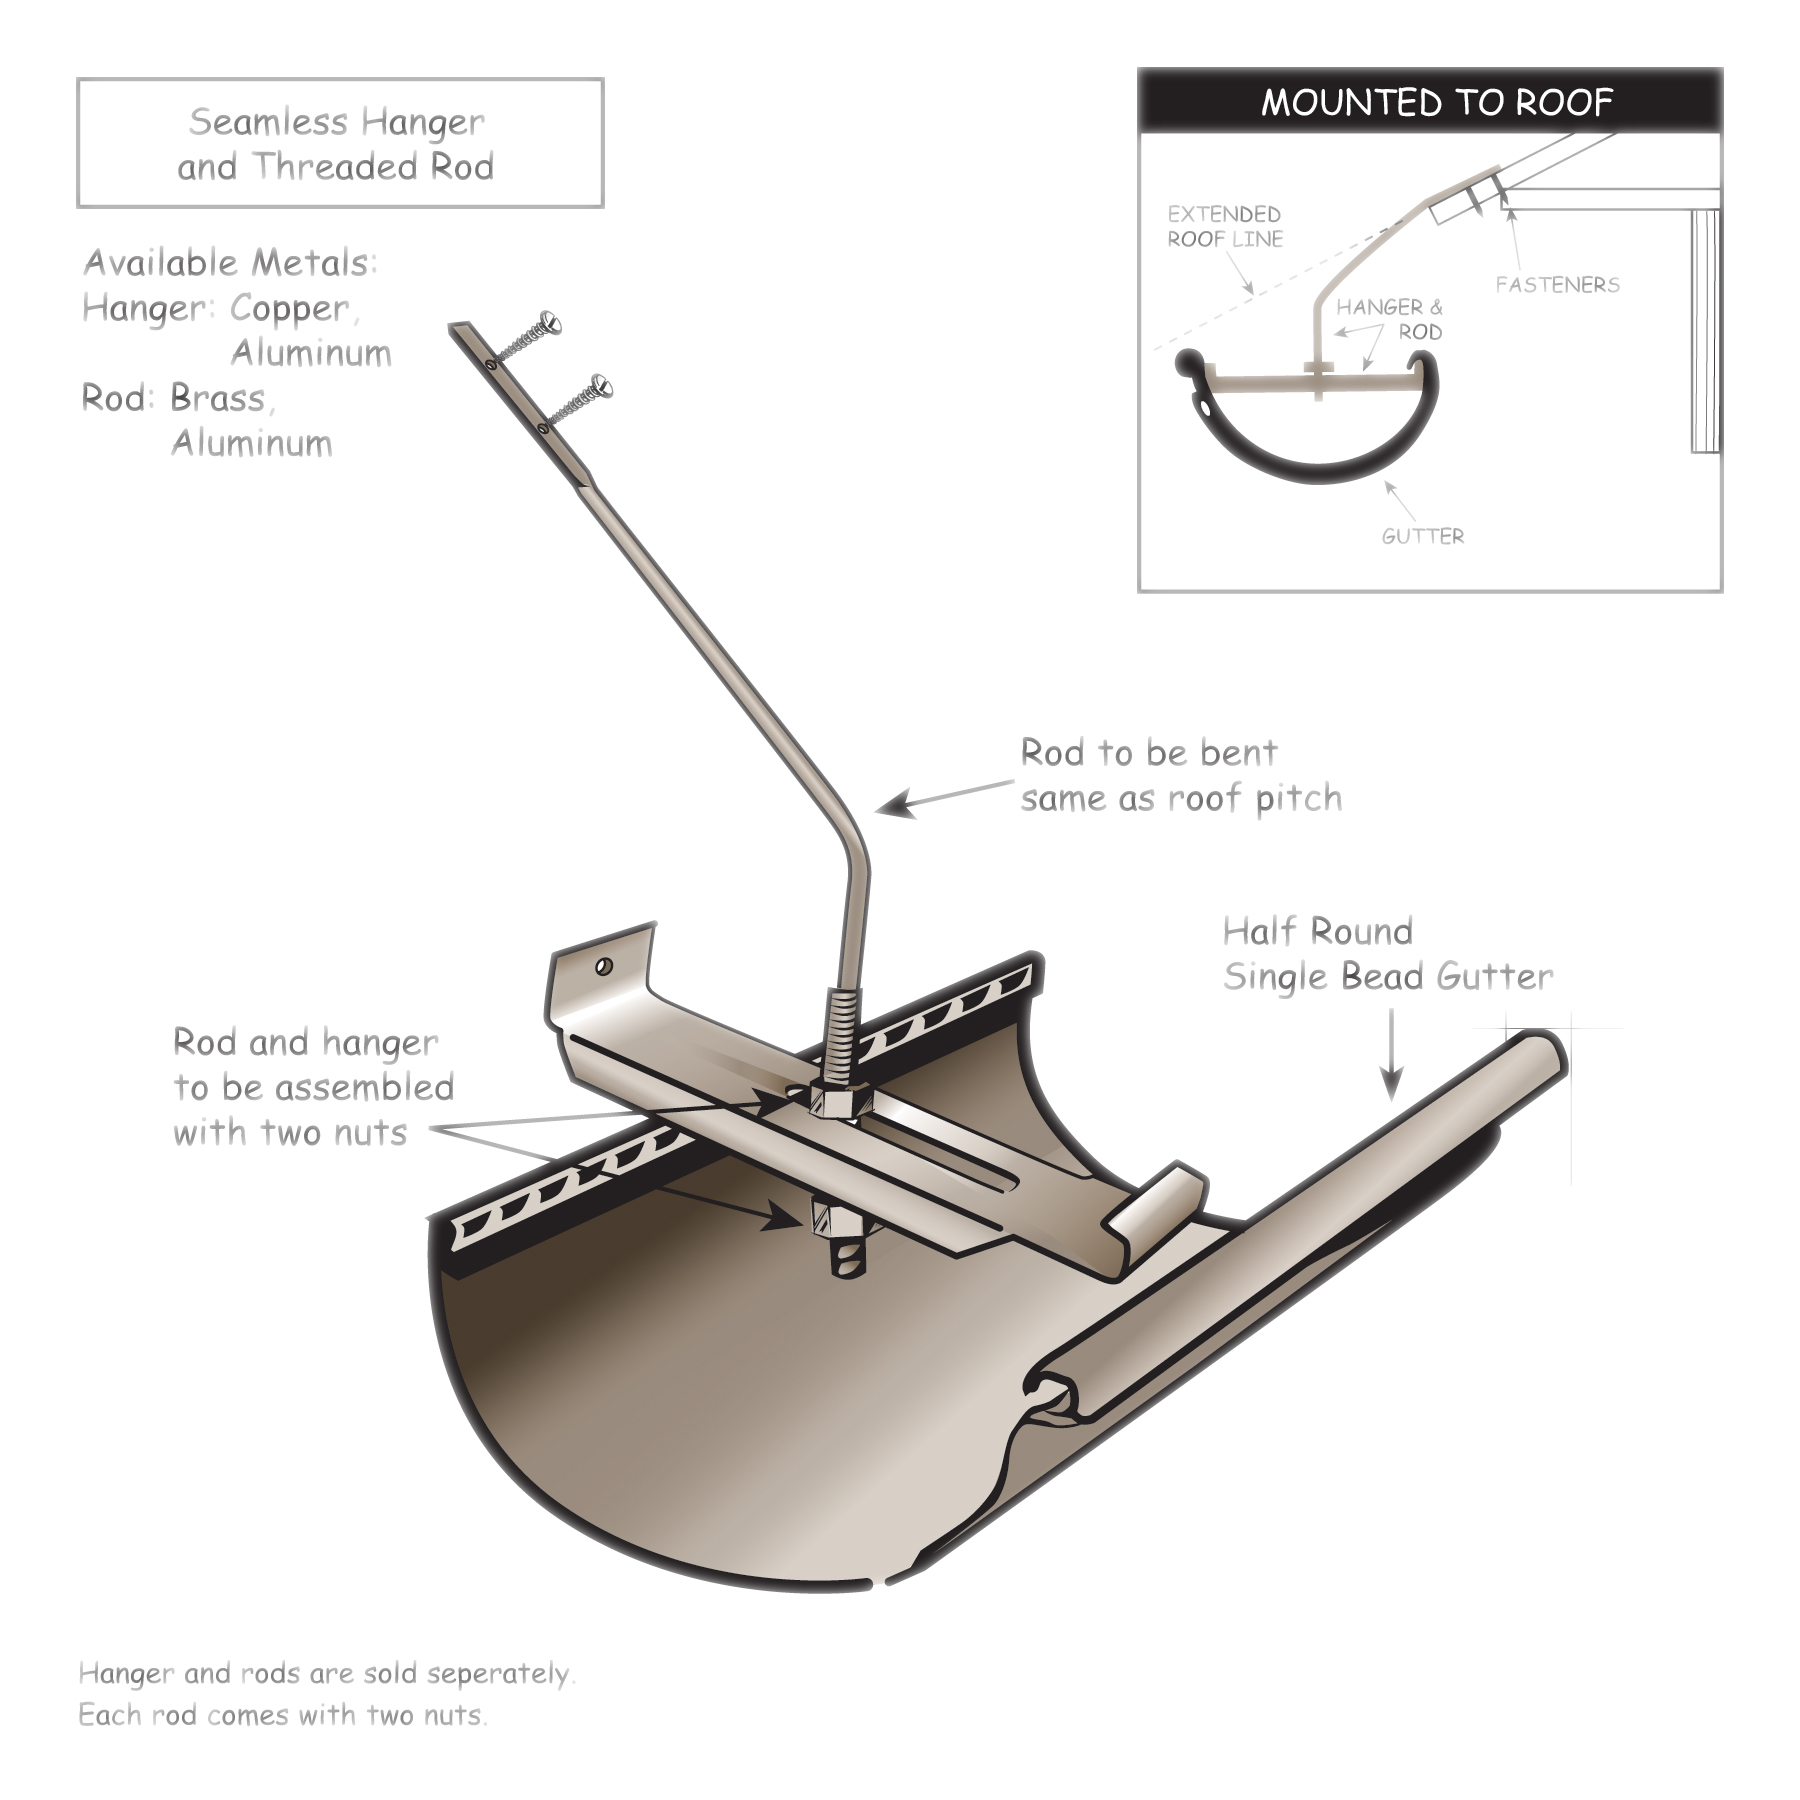 Stainless Steel Threaded Rod With Hanger Attached To Gutter